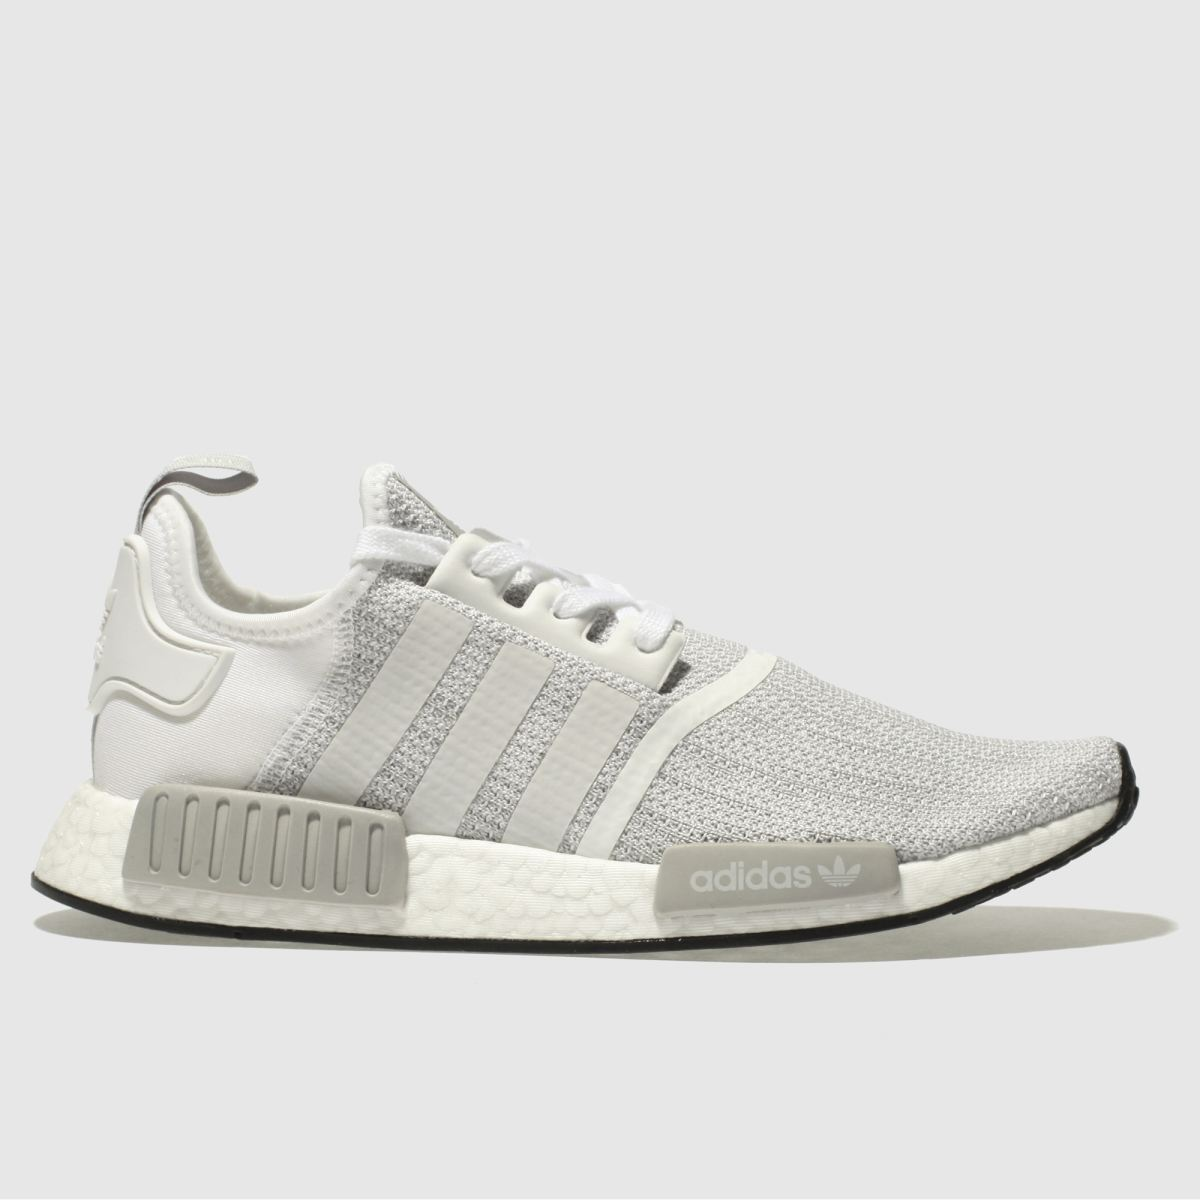 Adidas White & Grey Nmd_r1 Trainers